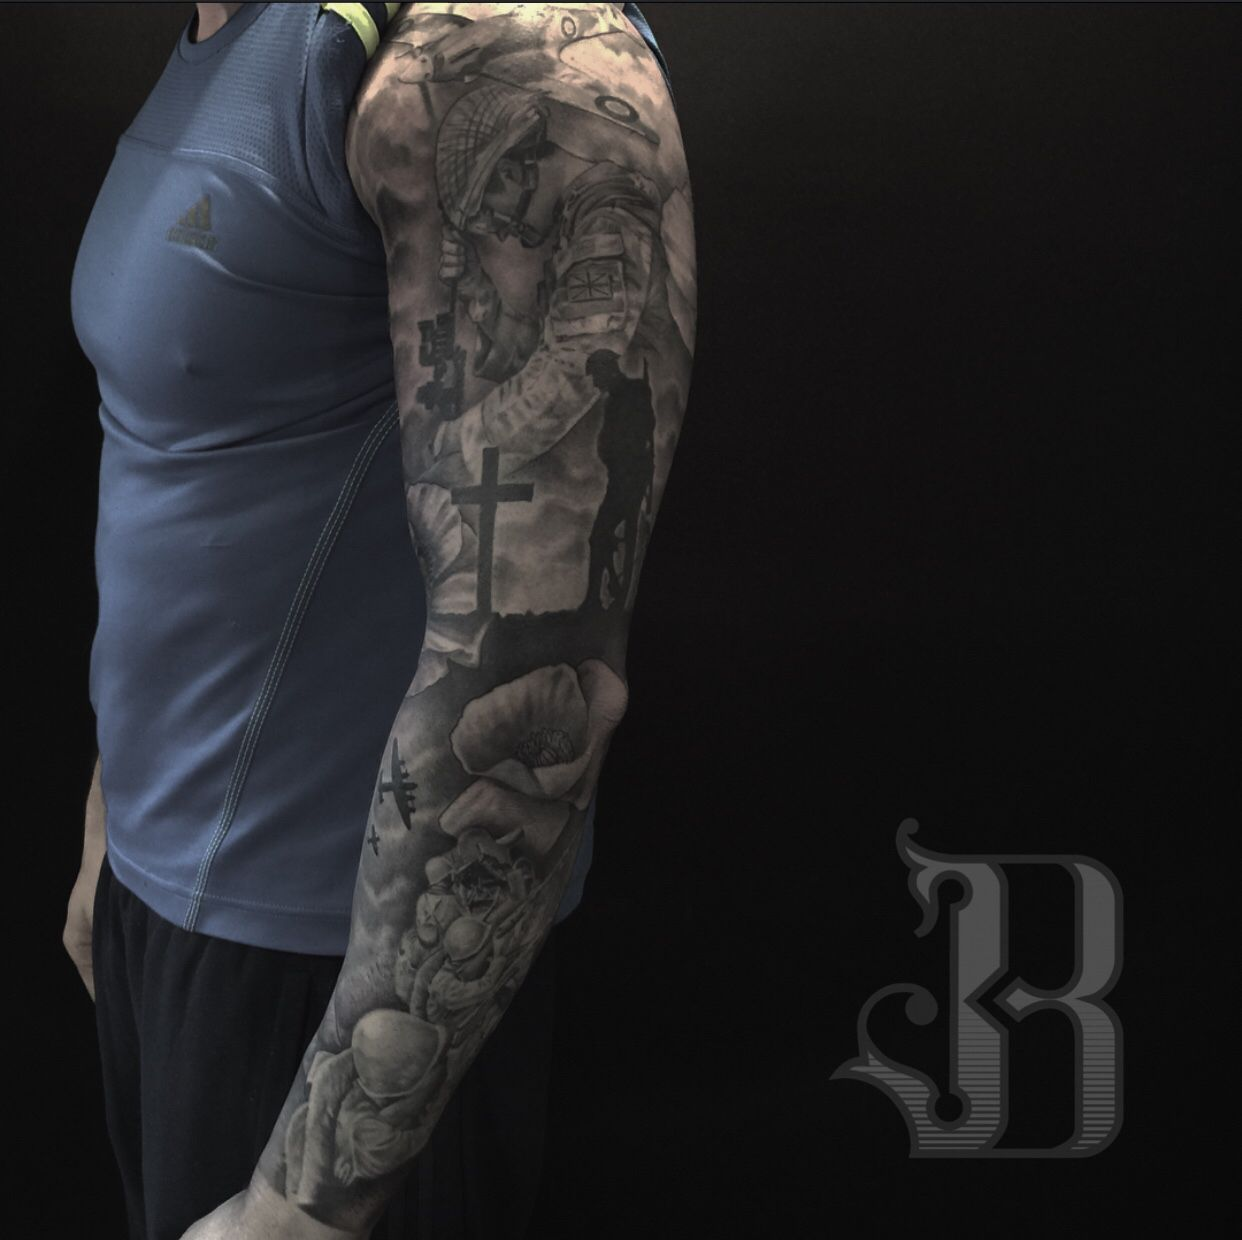 remembrance day sleeve army sleeve ink pinterest army tattoo and tatting. Black Bedroom Furniture Sets. Home Design Ideas